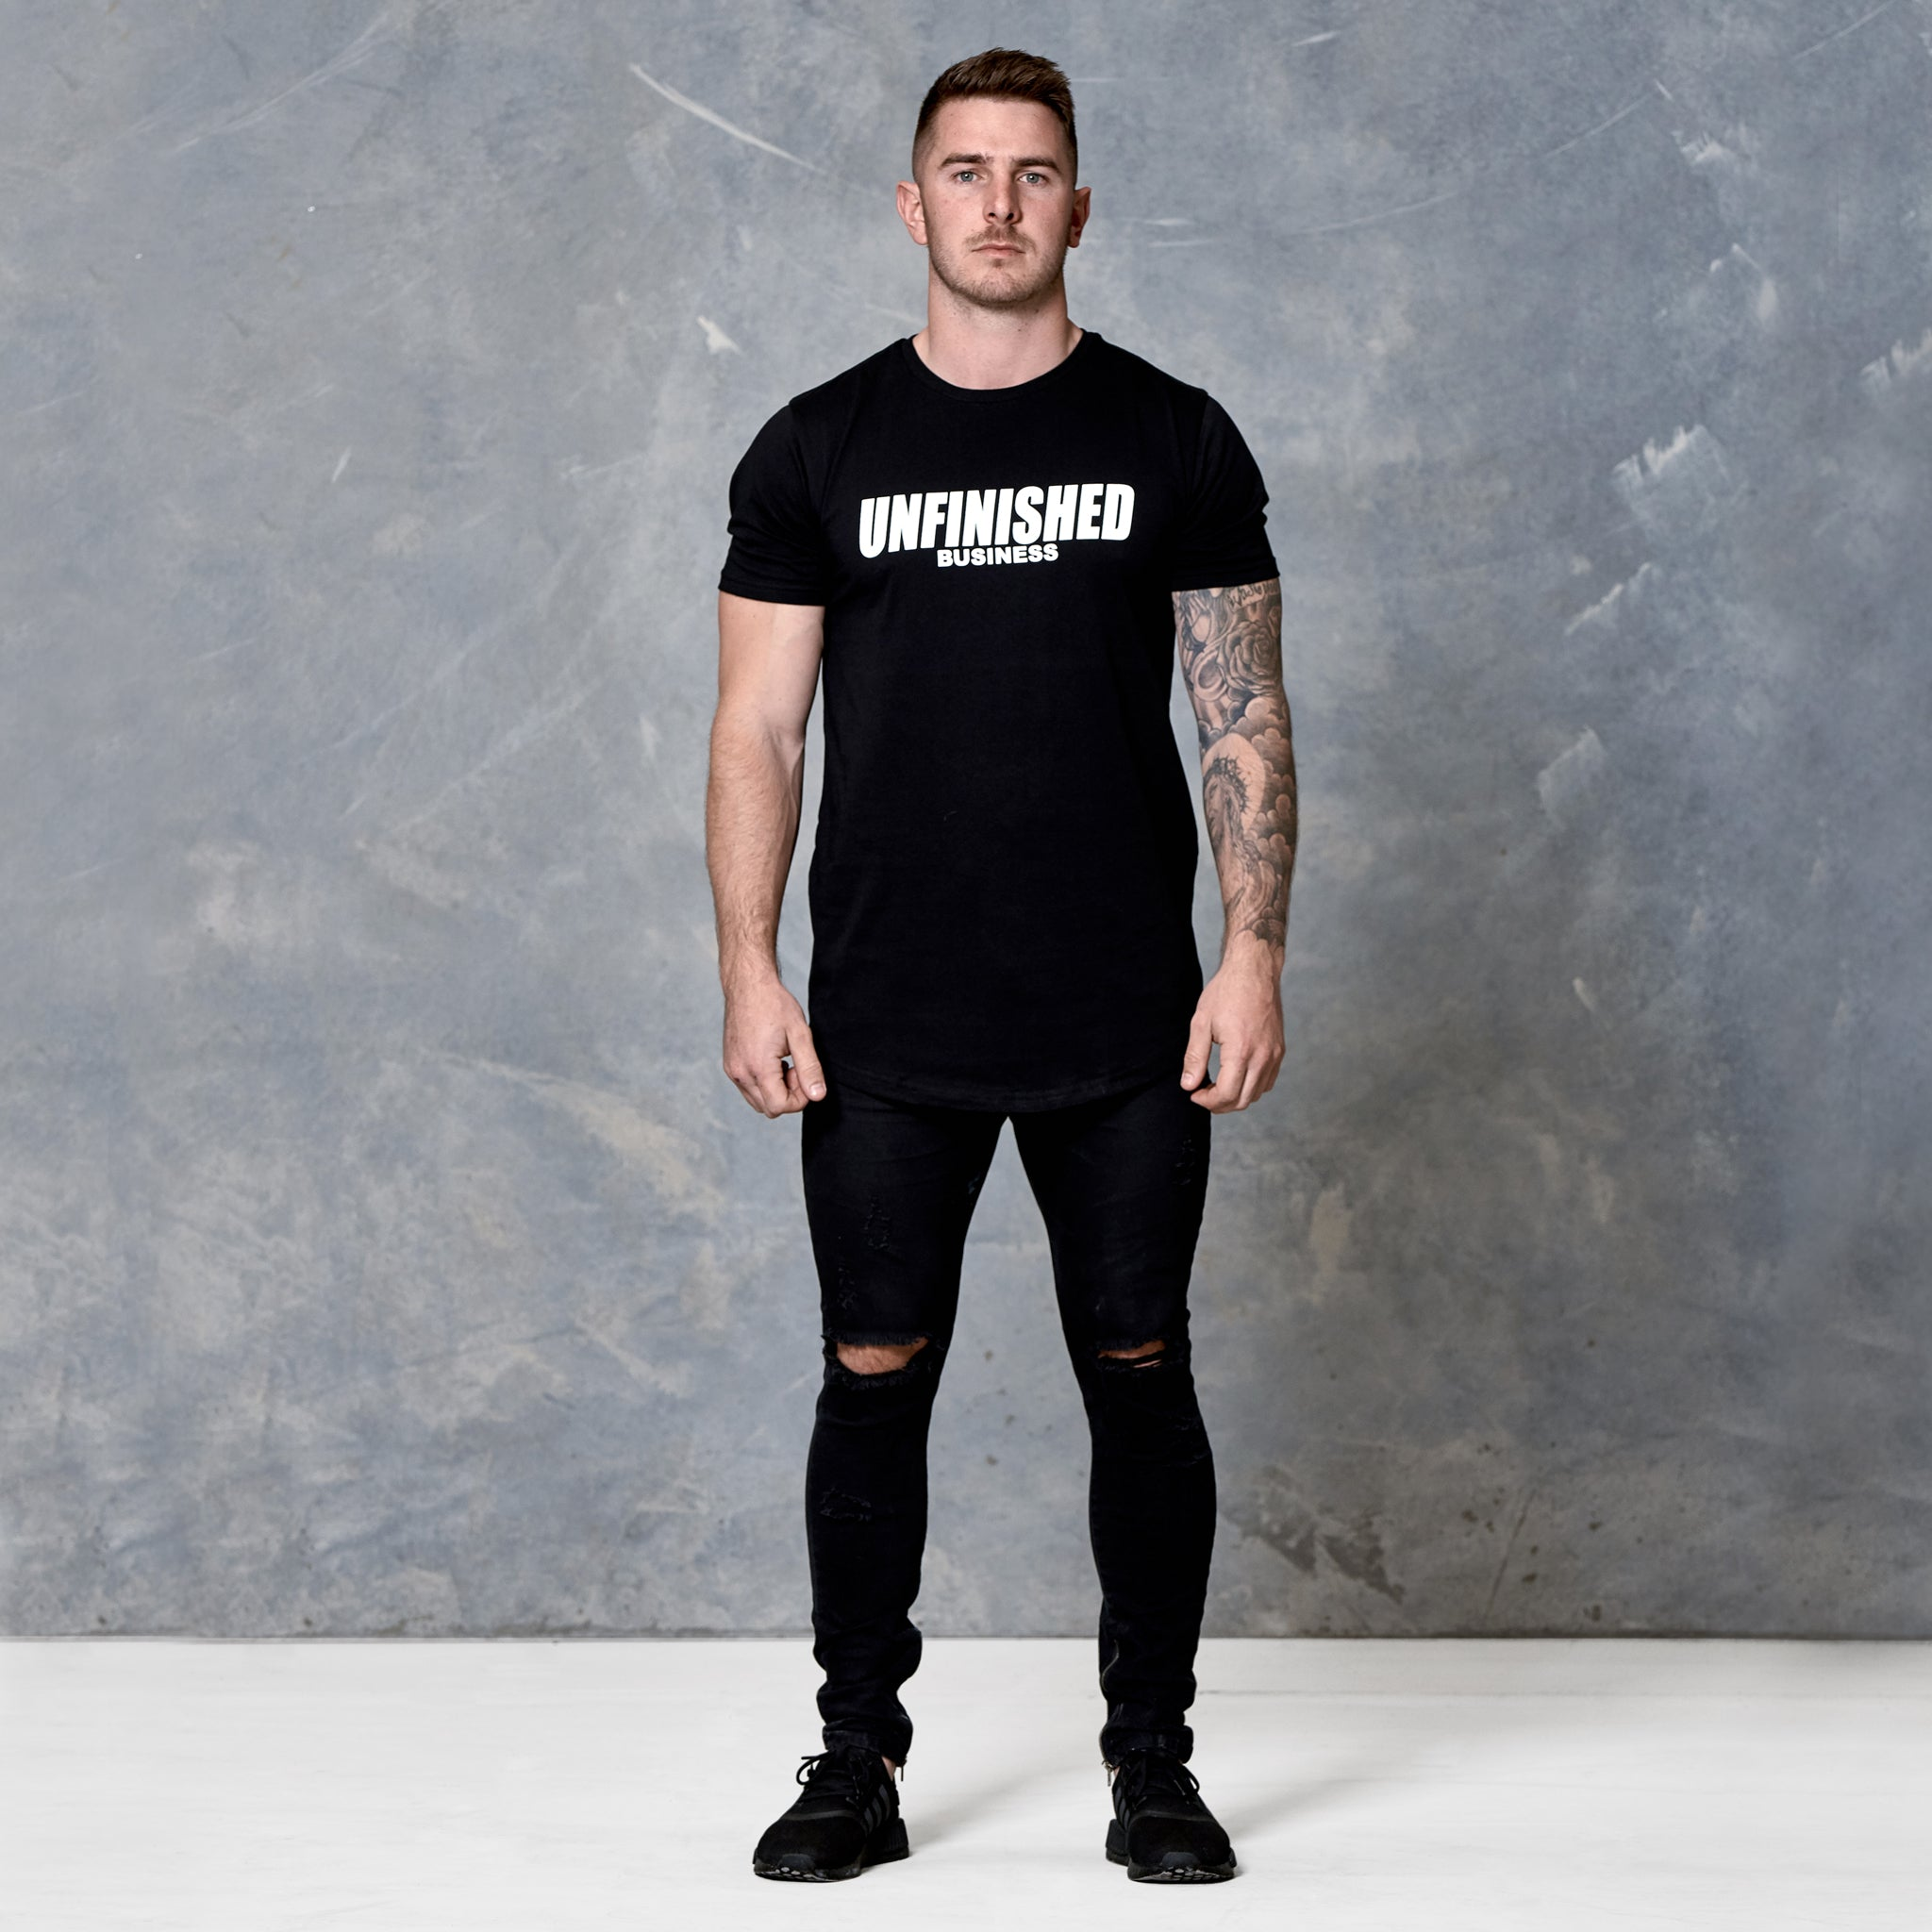 S2 Murdered Black Unfinished Business Curved Hem Tee